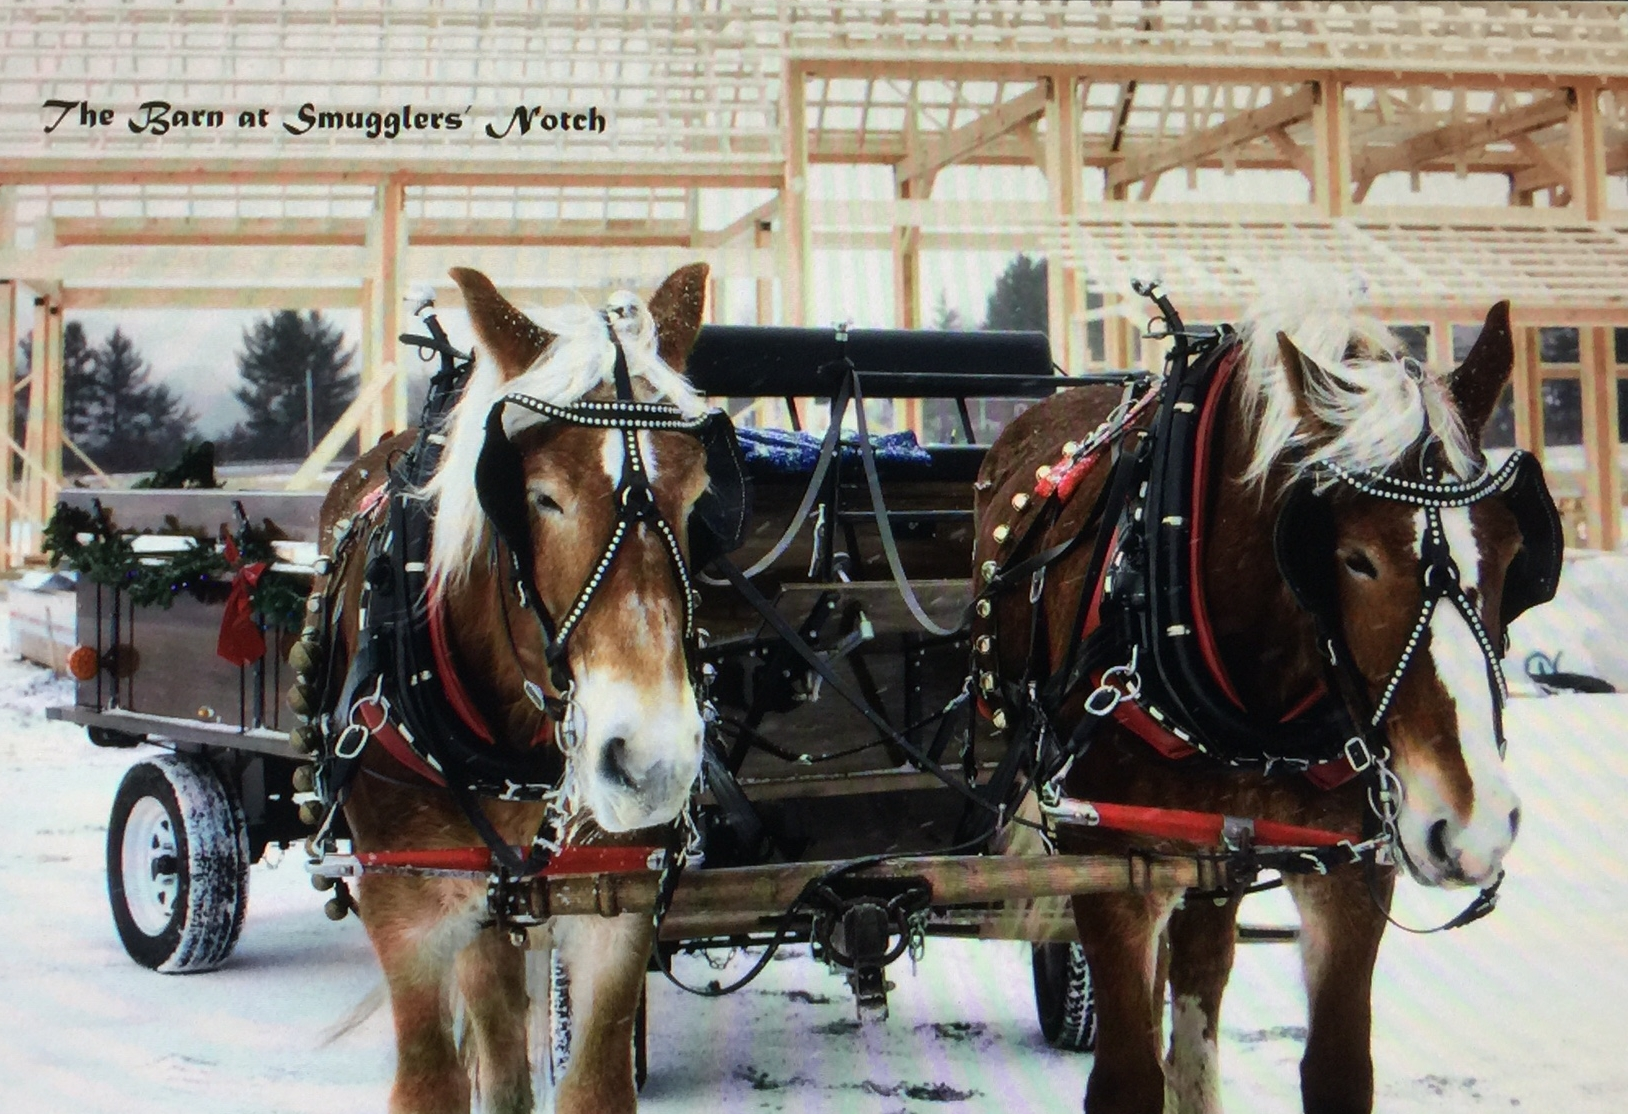 Authentic Amish Sleigh & Wagon Rides at The Barn at Smugglers' Notch